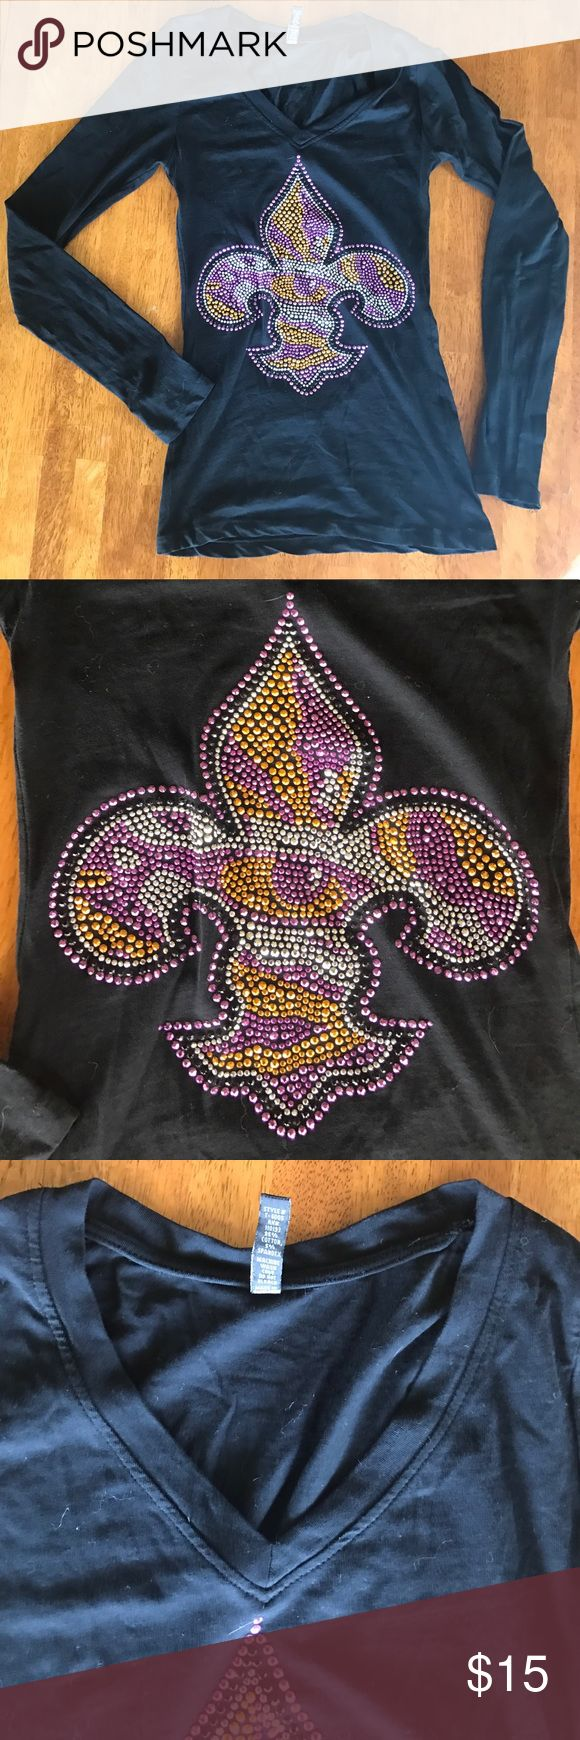 LSU Fleur de lis shirt with eye of the tiger. Black v-neck long sleeve shirt. Extremely cool and unique! Fleur de lis with eye of the tiger in the middle. Geaux tigers! LSU Tops Tees - Long Sleeve